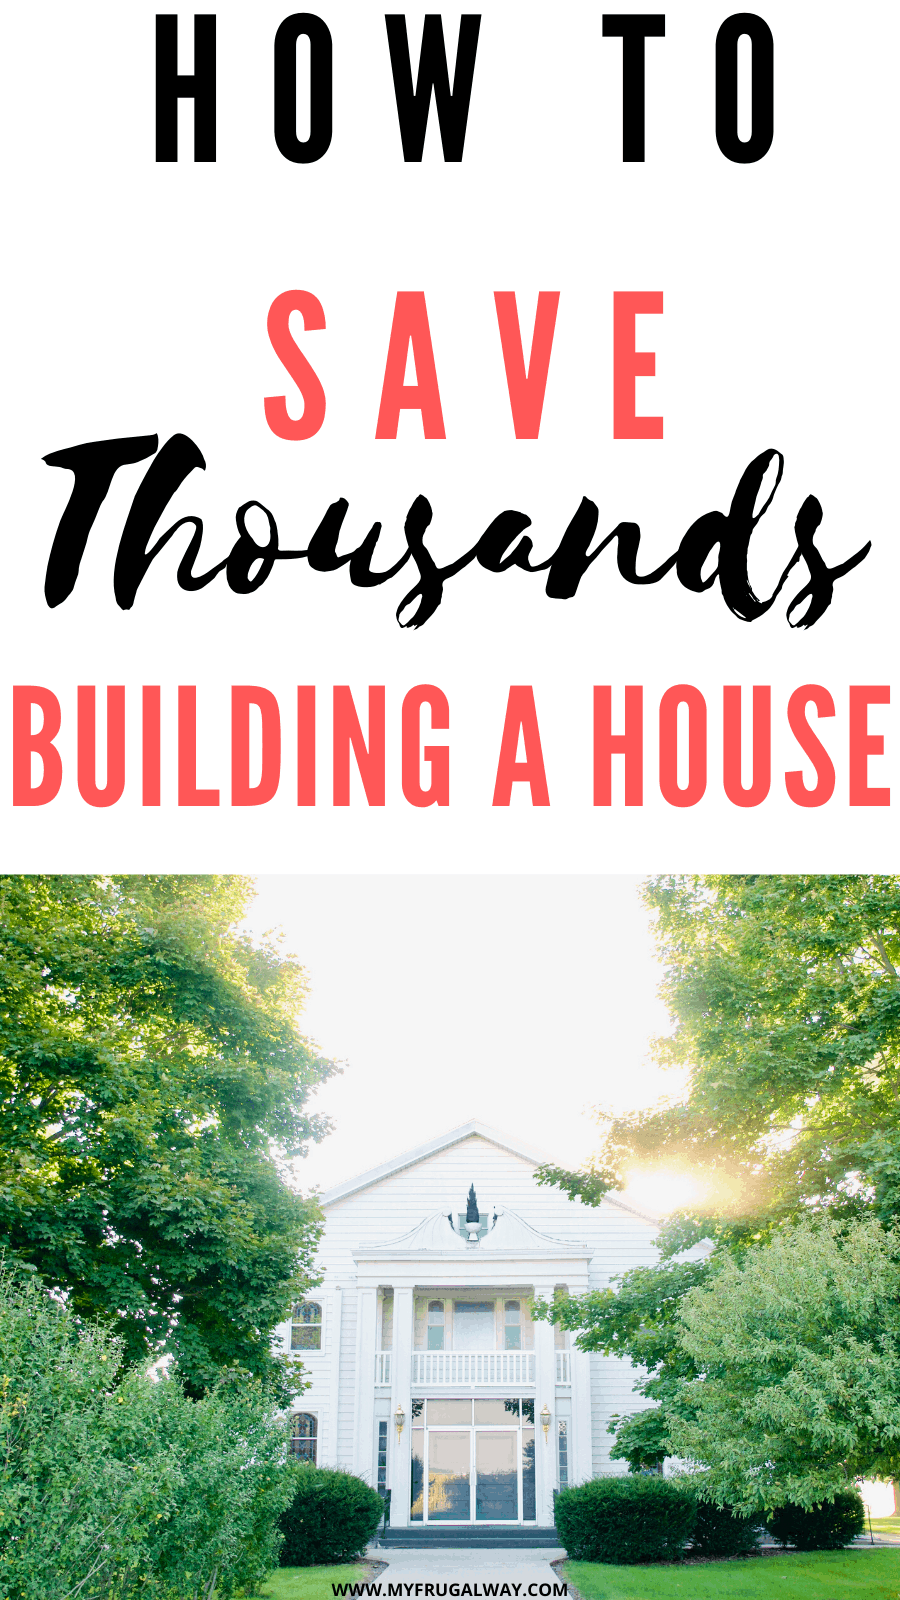 How to save money when building a dream house. Best building a house on a budget tips.